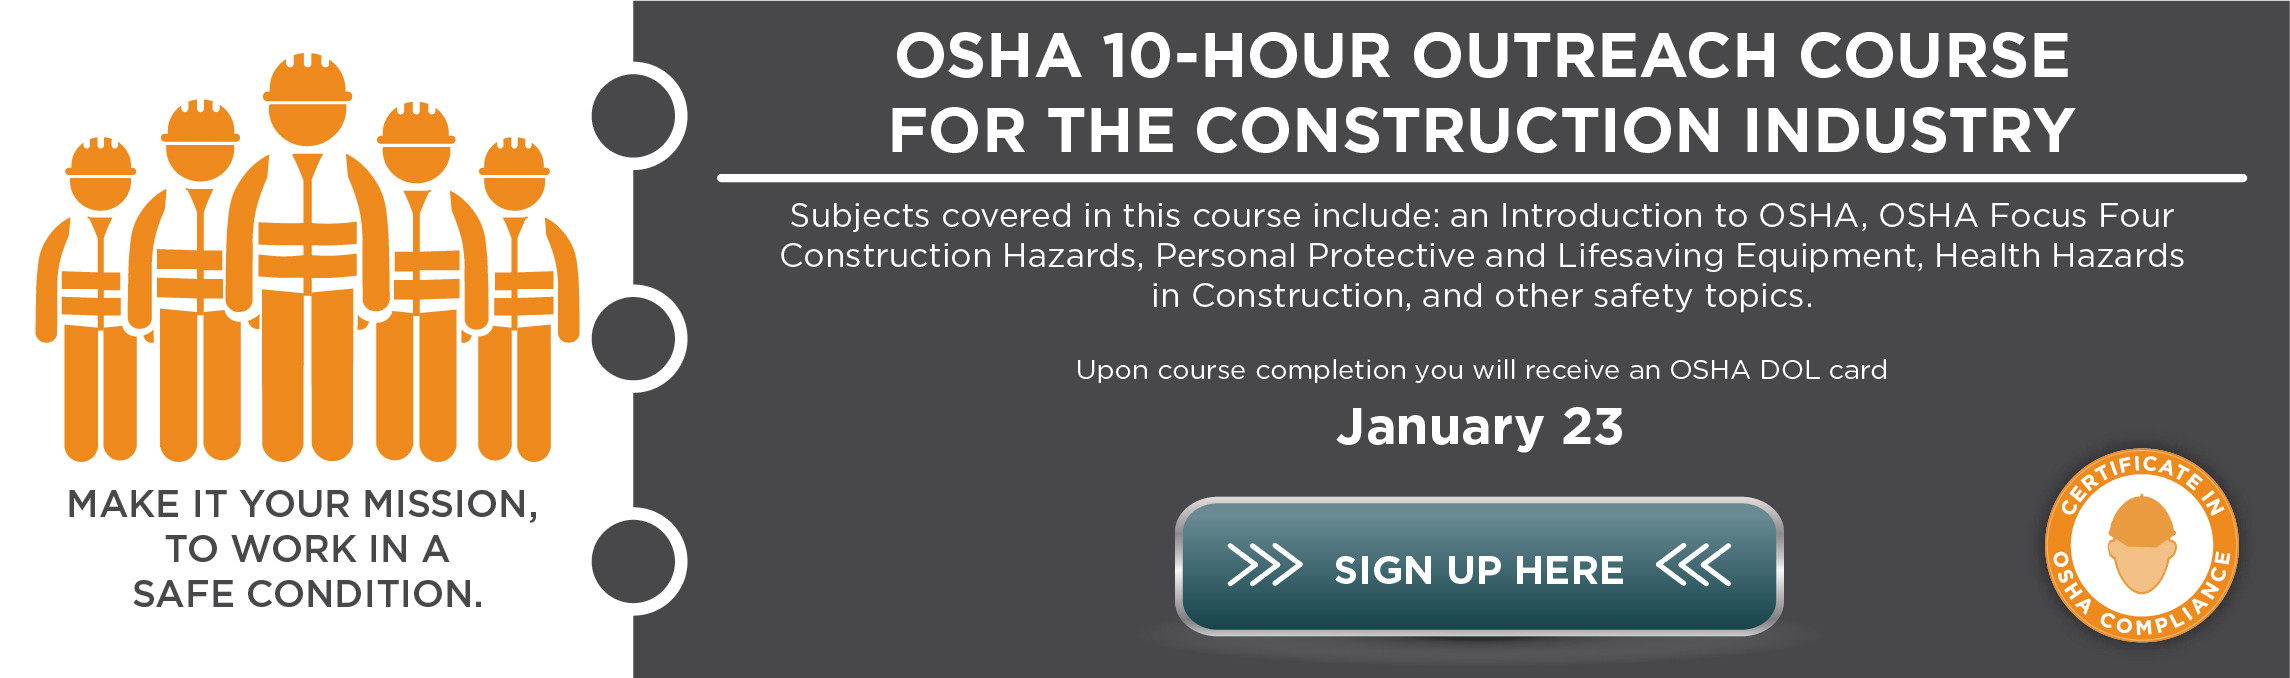 OSHA 10-HR Outreach Course for Construction Industry